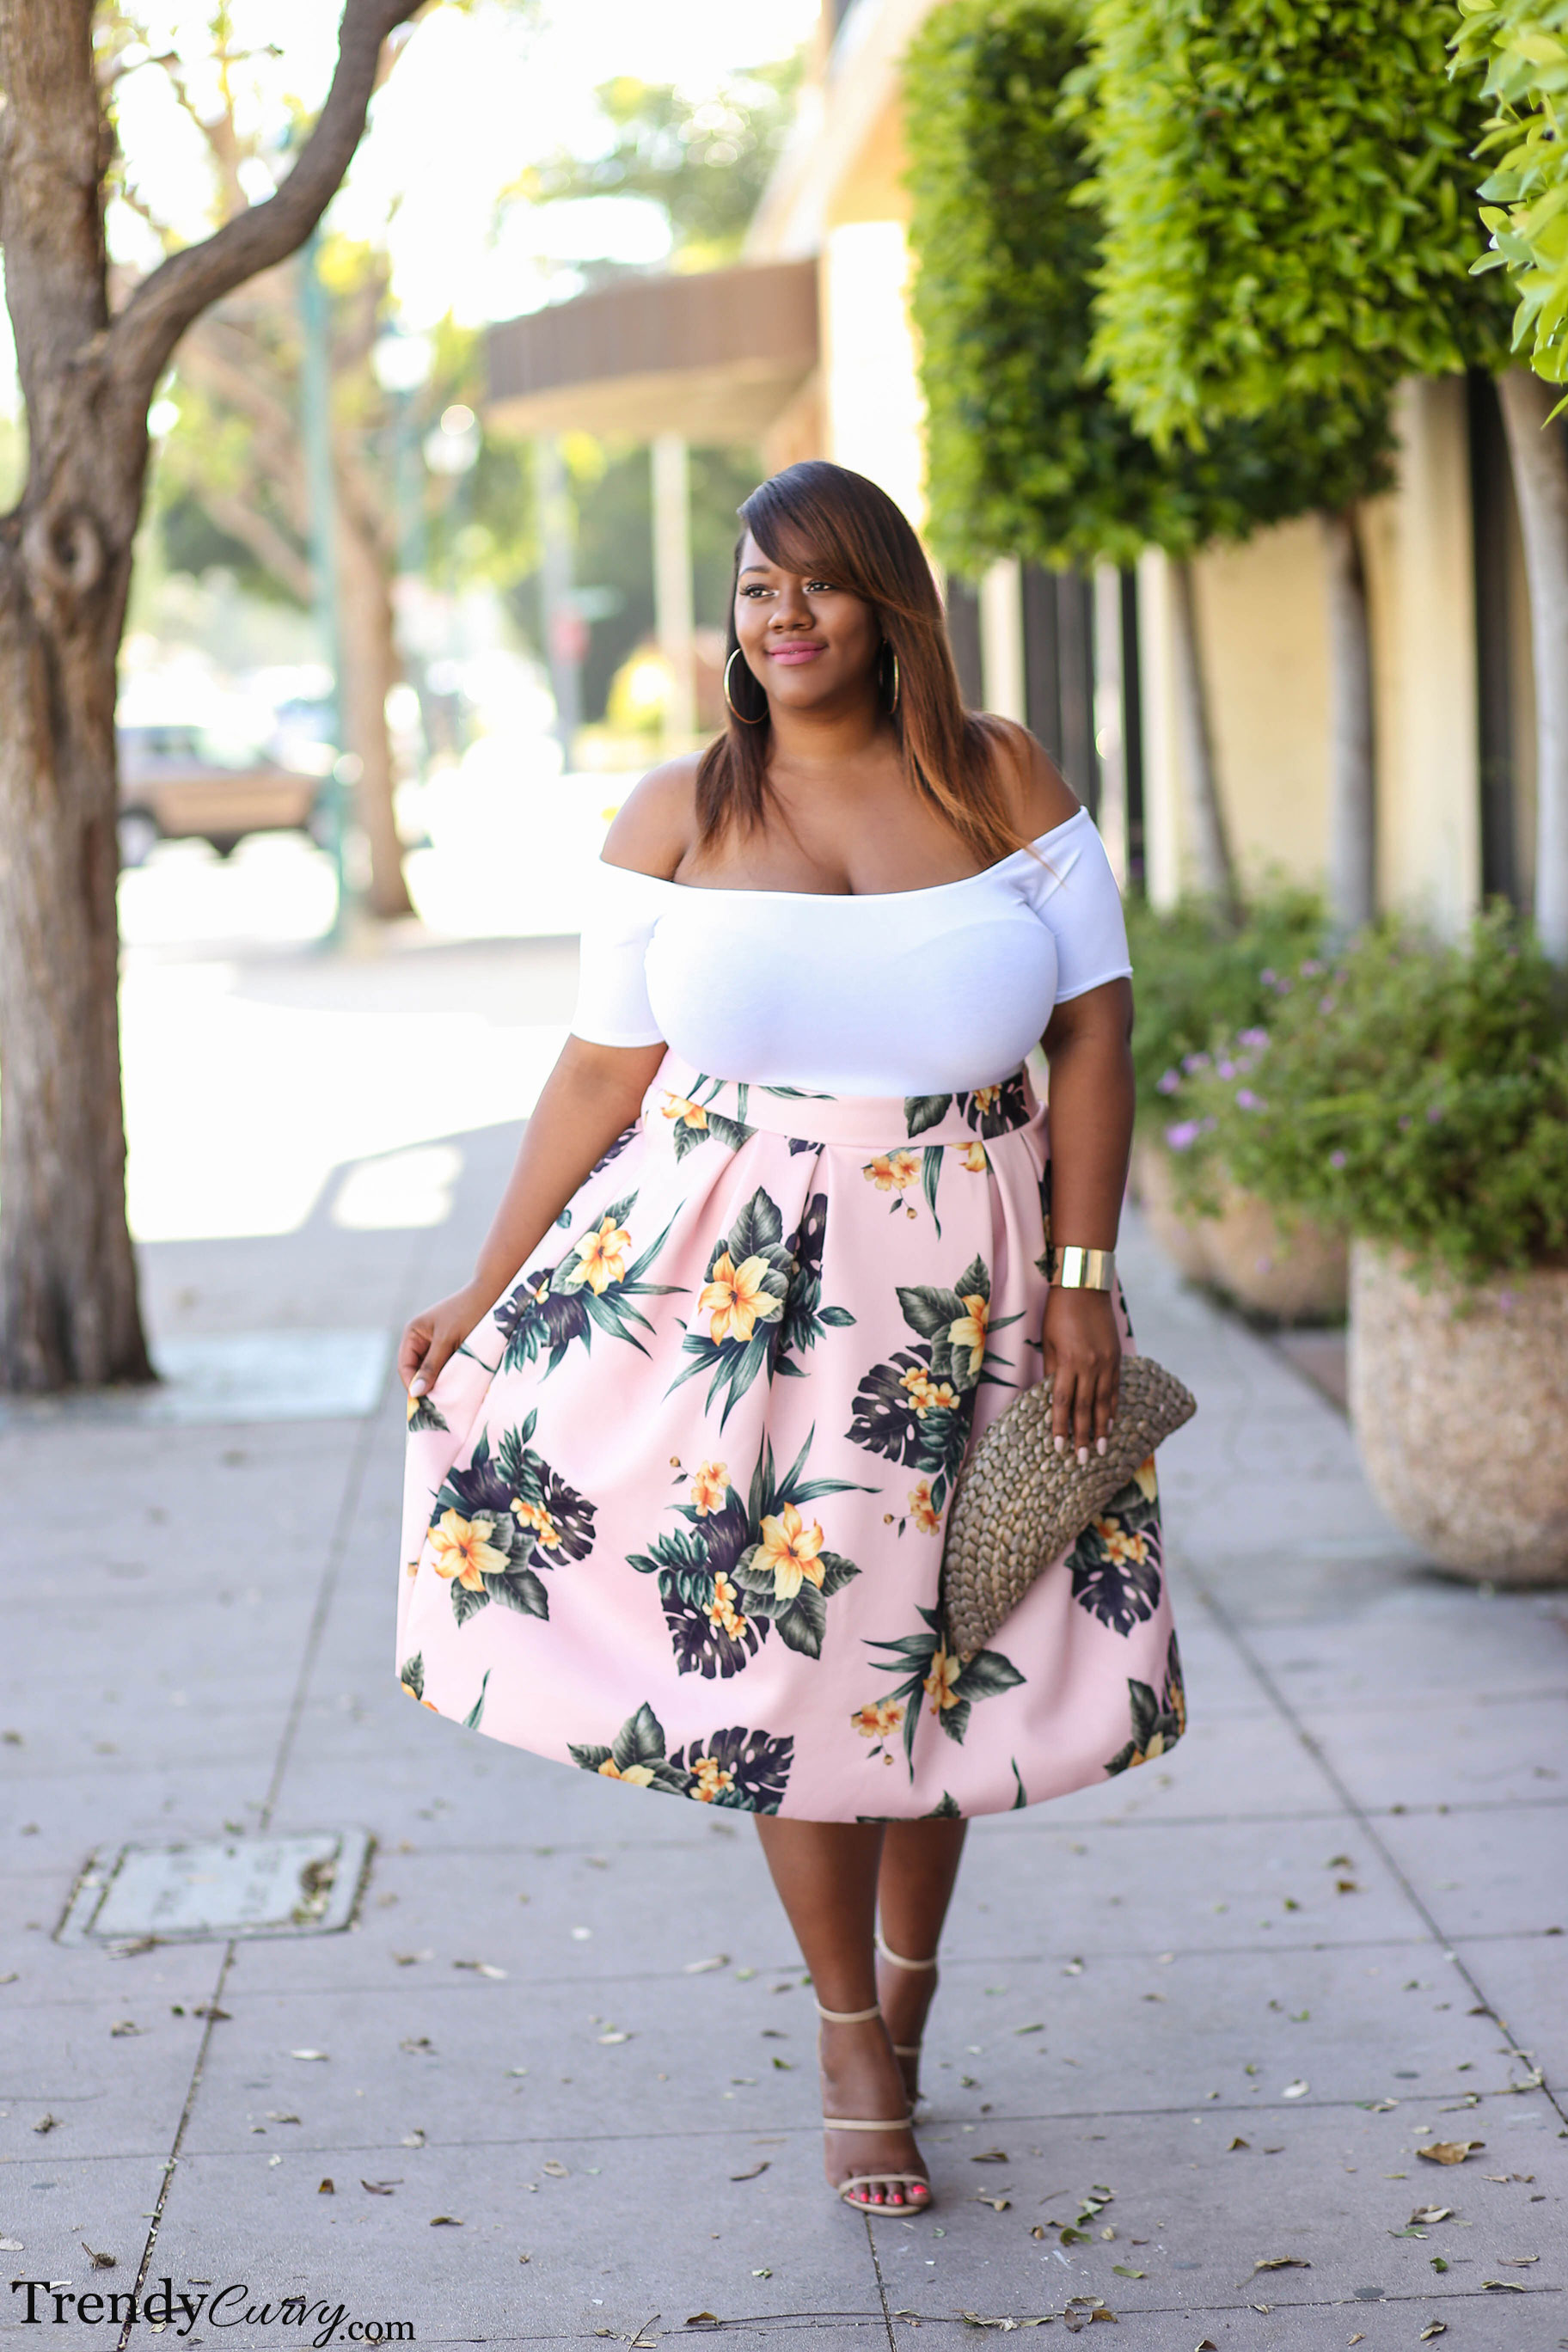 trendy curvy - page 14 of 52 - plus size fashion blogtrendy curvy